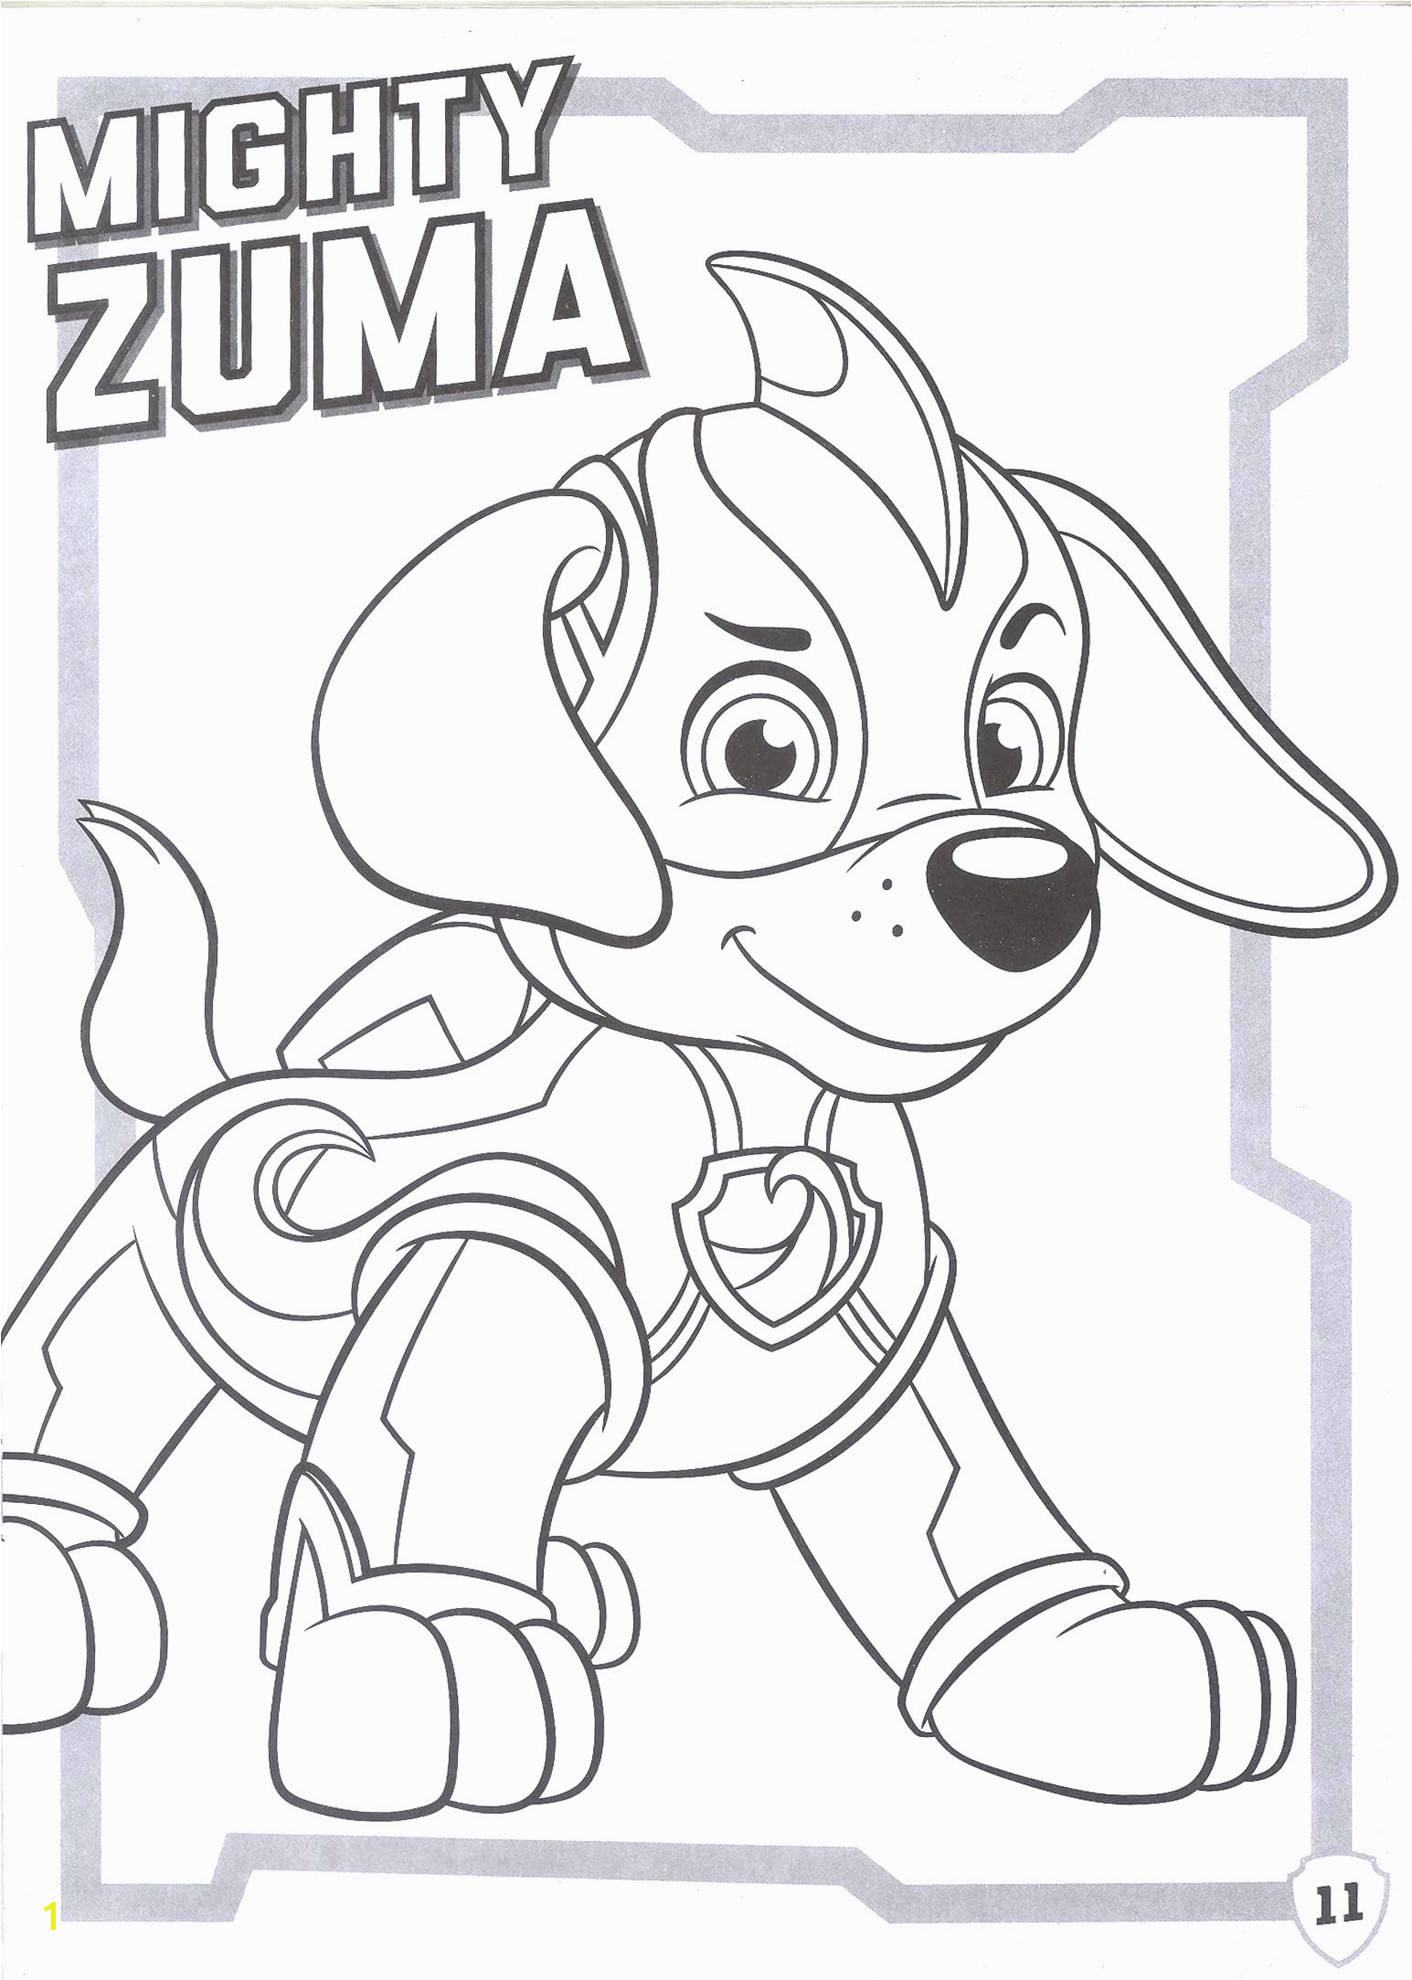 ws nickelodeon paw patrol mighty pups coloring book